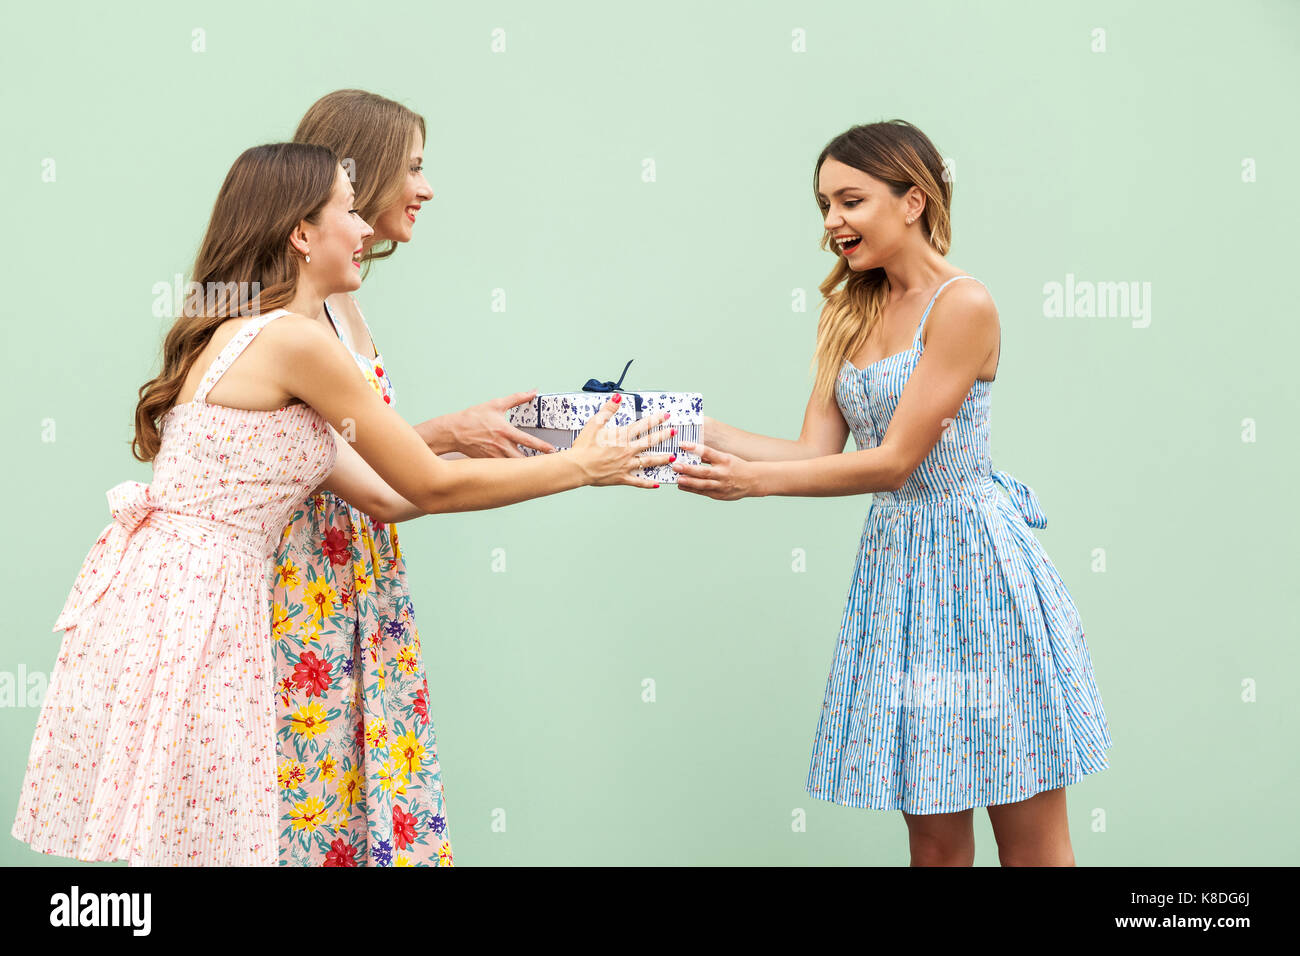 Young Adult Cute Girl Giving Surprise Gift To Hes Pretty Friend Concept Of Birthday And Party Isolated On Green Background